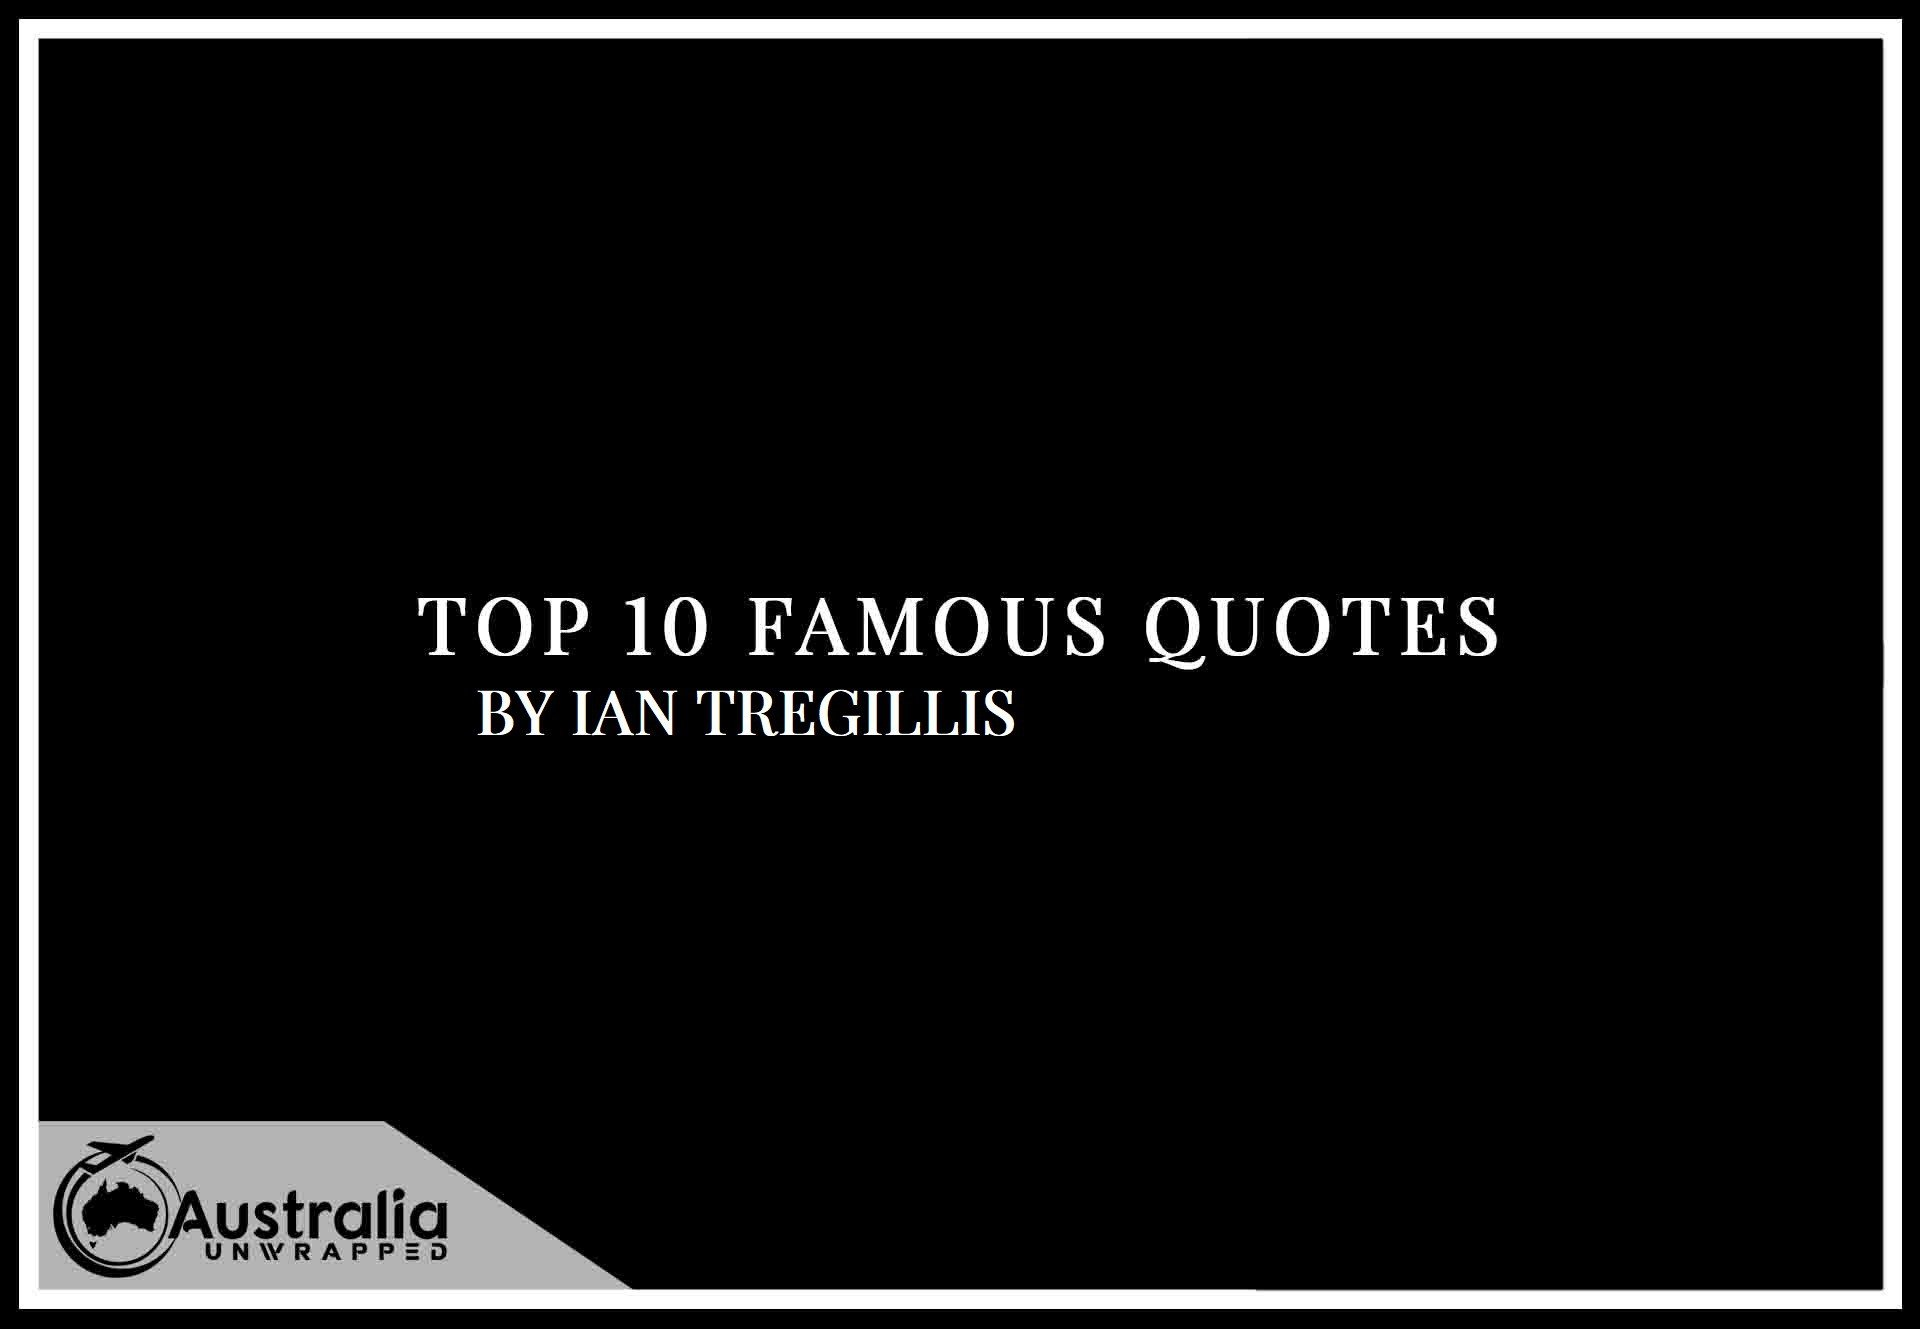 Top 10 Famous Quotes by Author Ian Tregillis